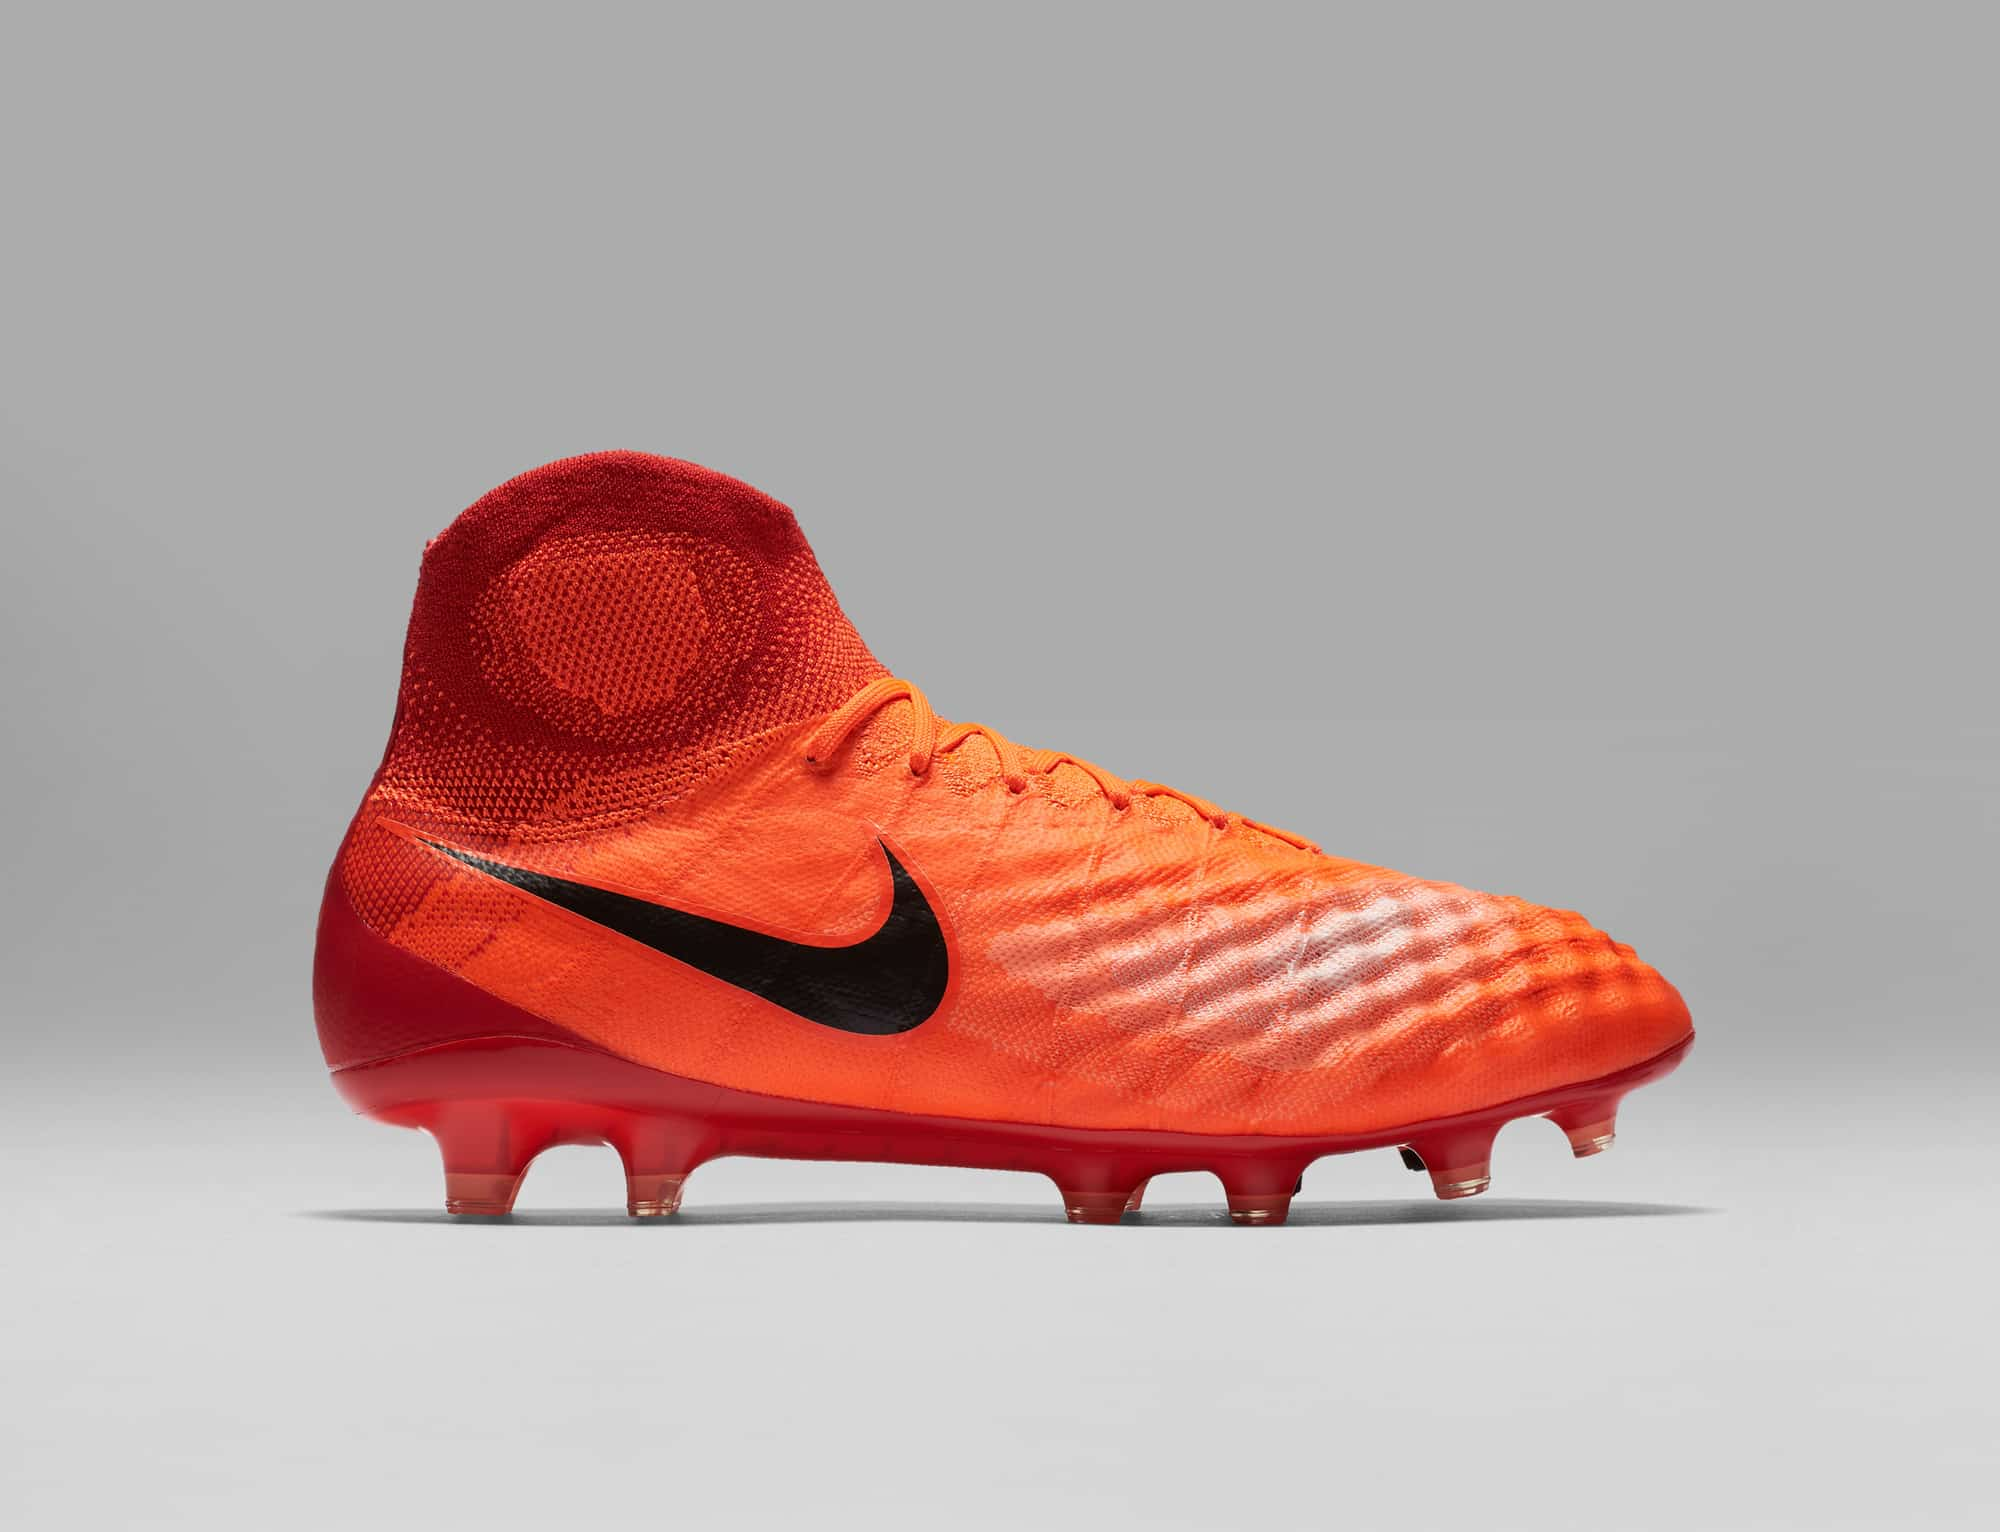 chaussures-football-Nike-Magista-Obra-2-Men-Radiation-Flare-img2